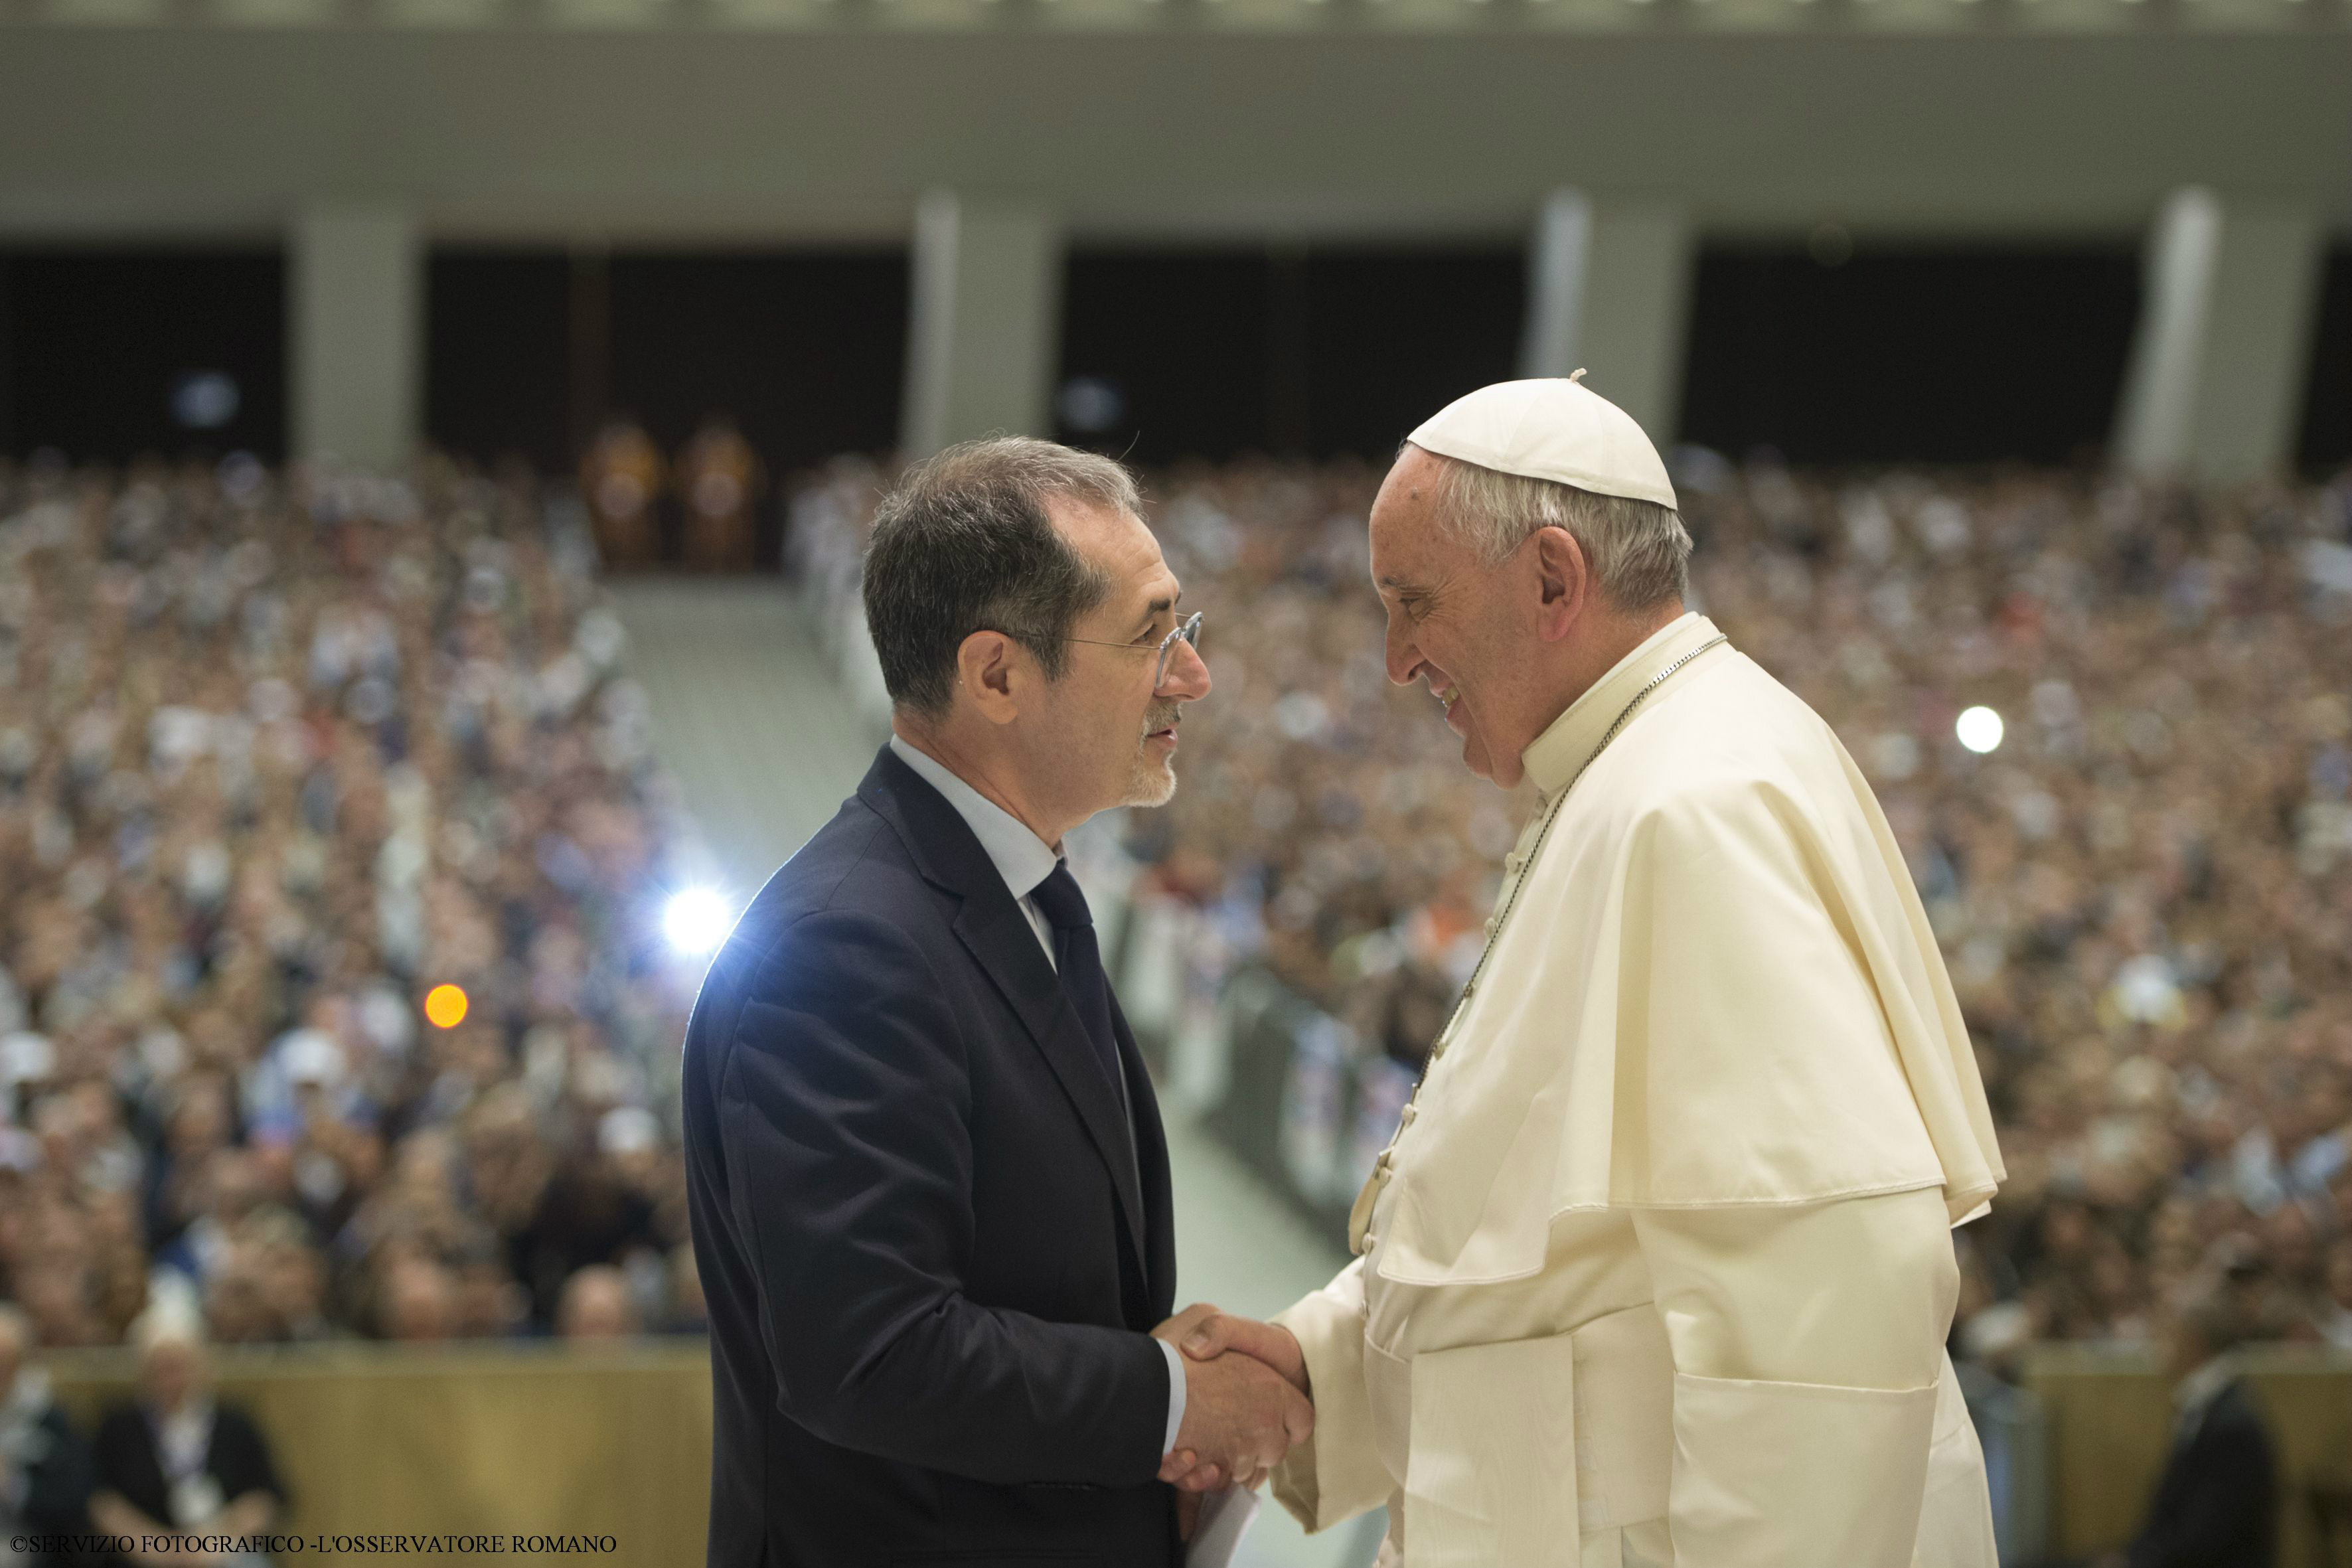 Pope Francis greets the national president of the ACLI